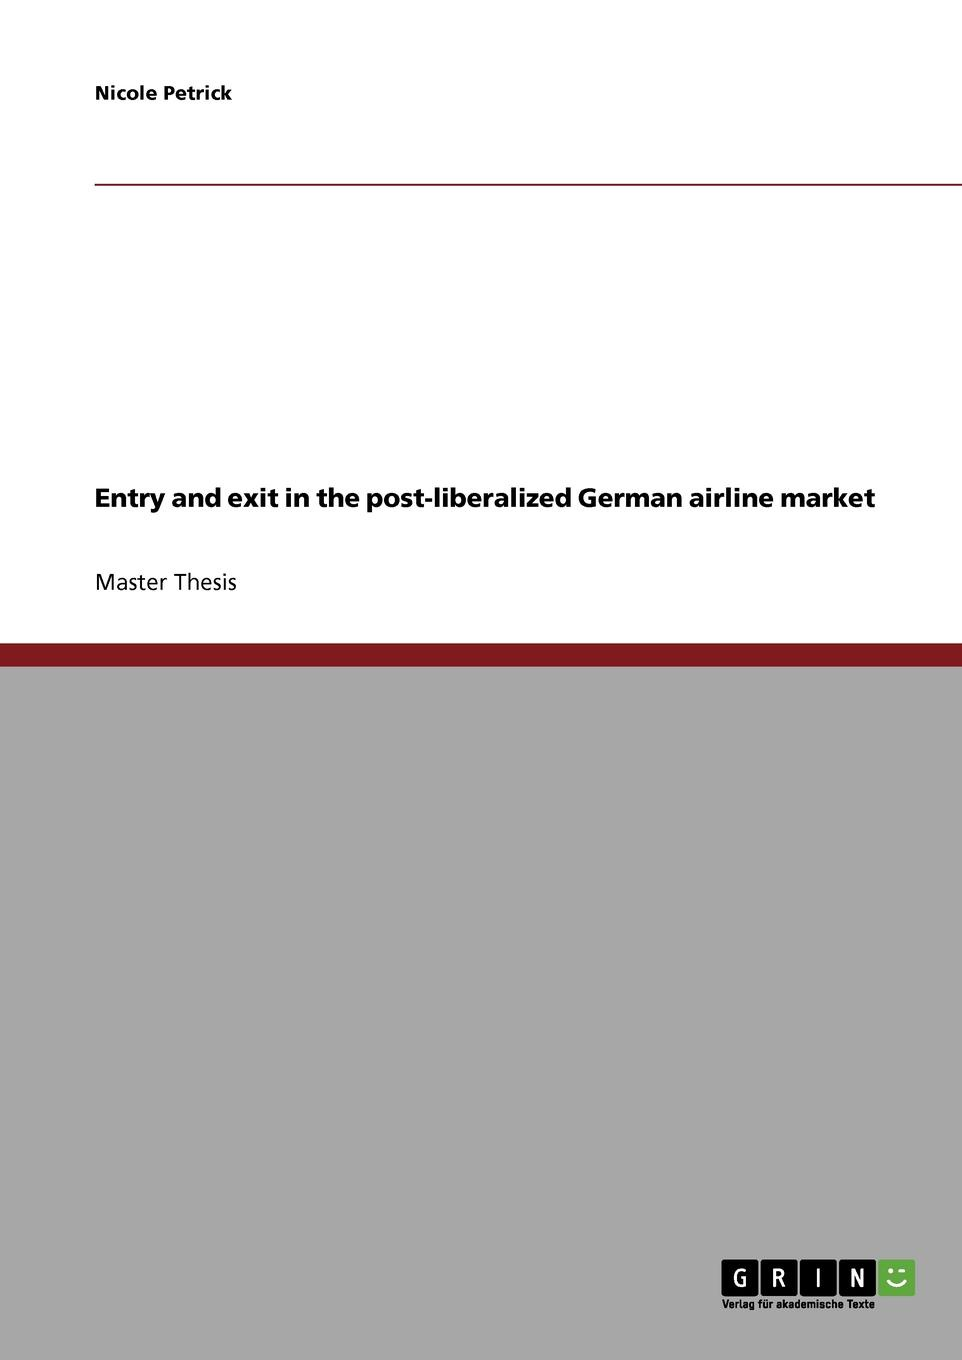 цены Nicole Petrick Entry and exit in the post-liberalized German airline market